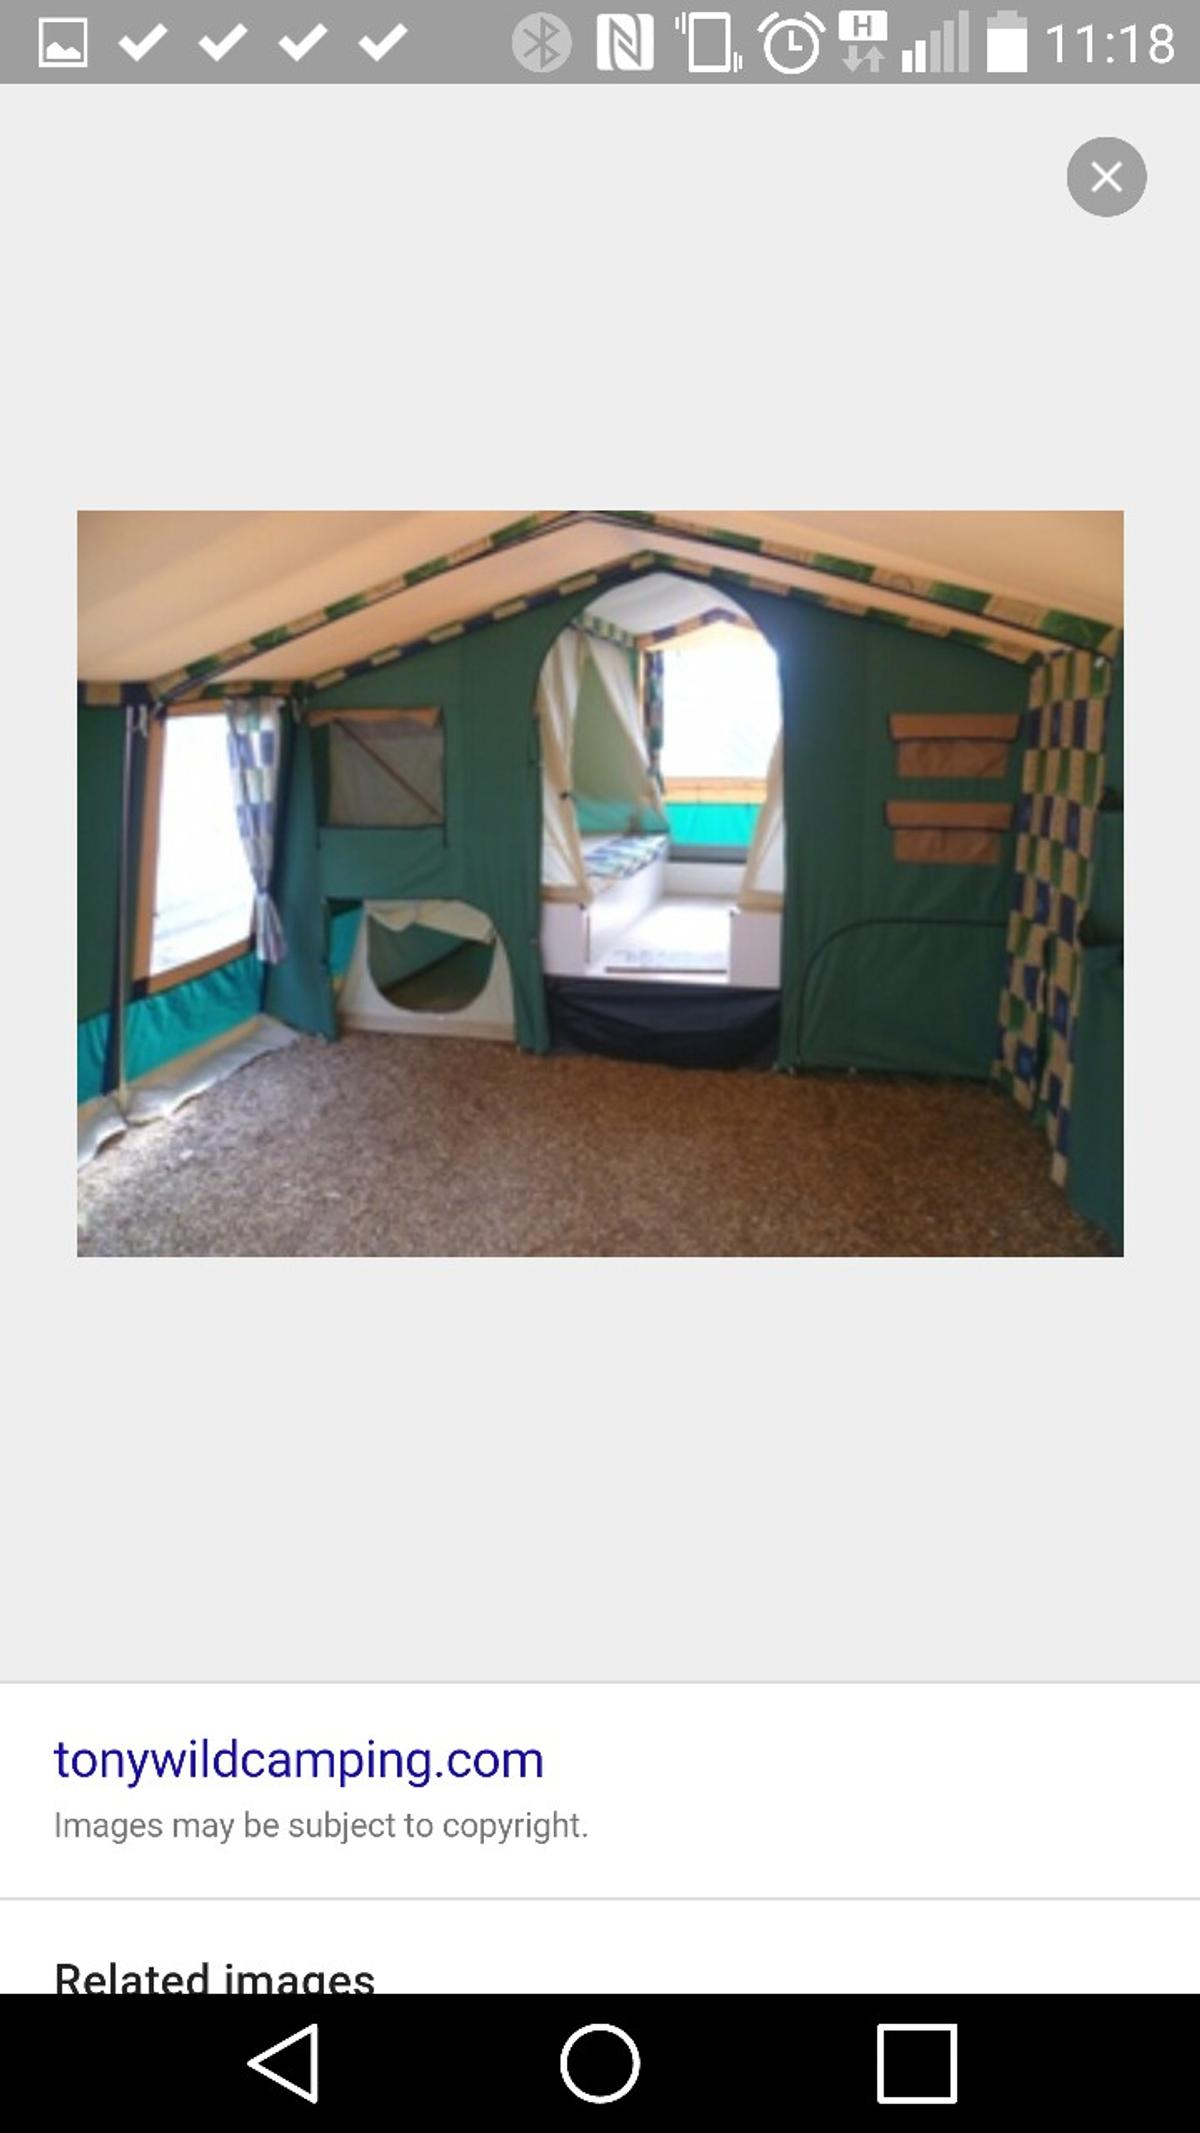 Cabanon saturn trailer tent in Chesterfield for £500 00 for sale